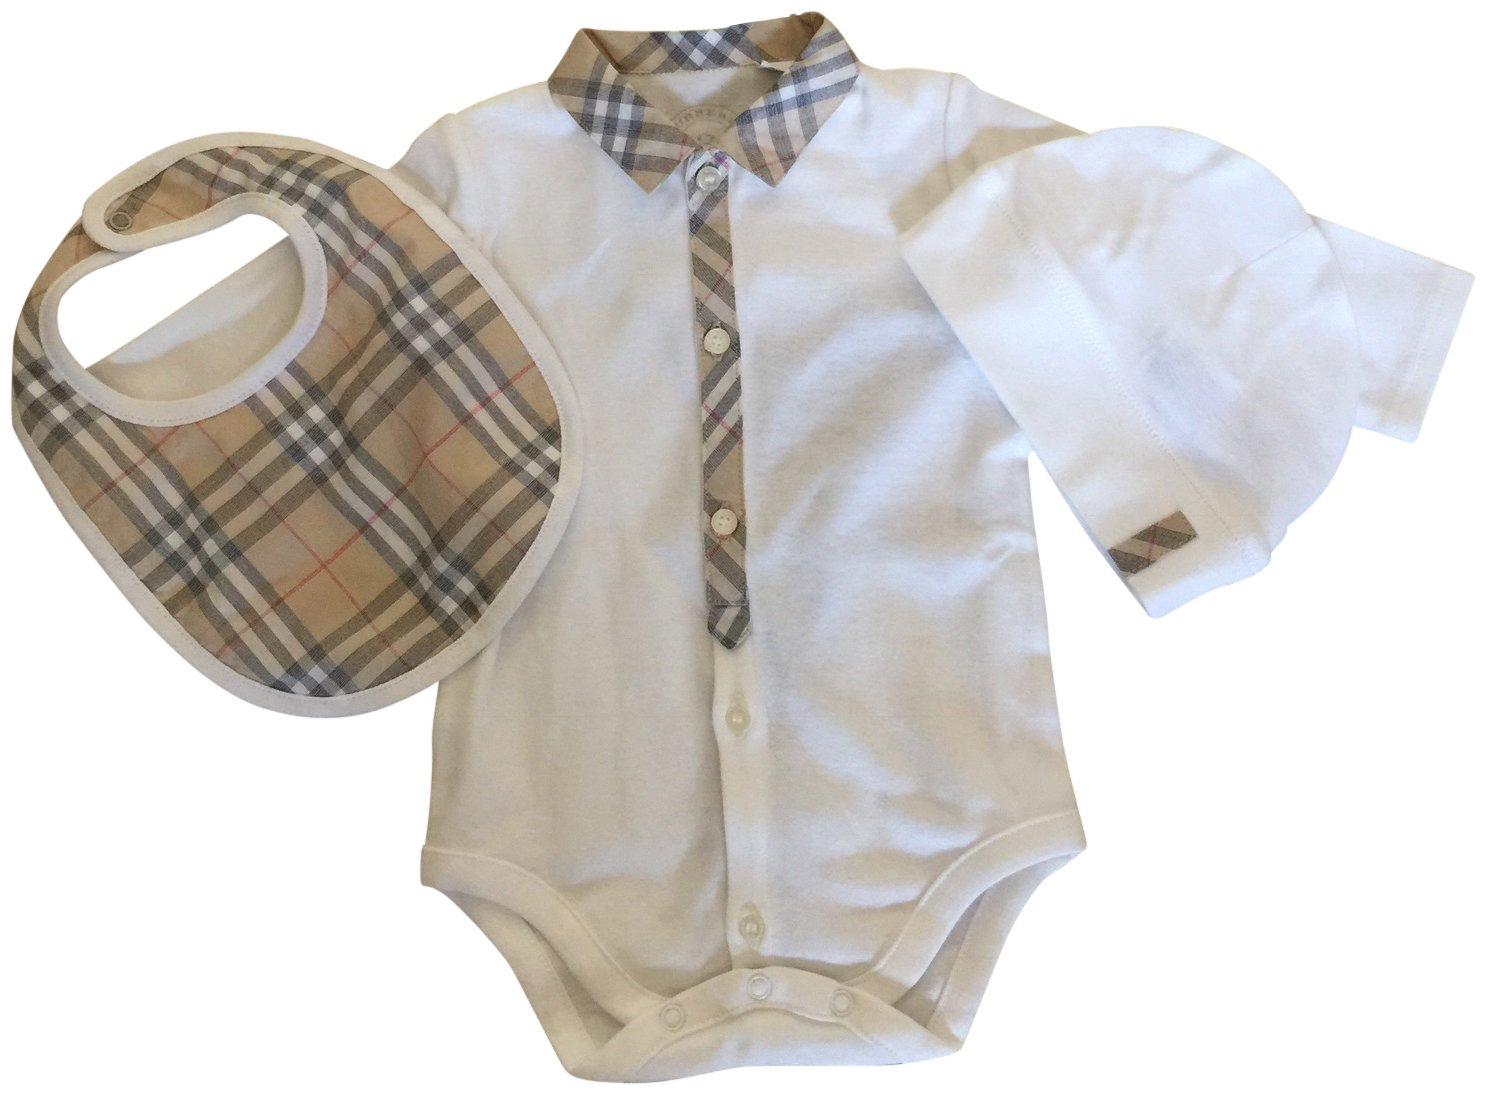 Burberry Baby Infant Bodysuit Shower Gift Coverall Bib Hat Gift Set 9M by BURBERRY (Image #1)